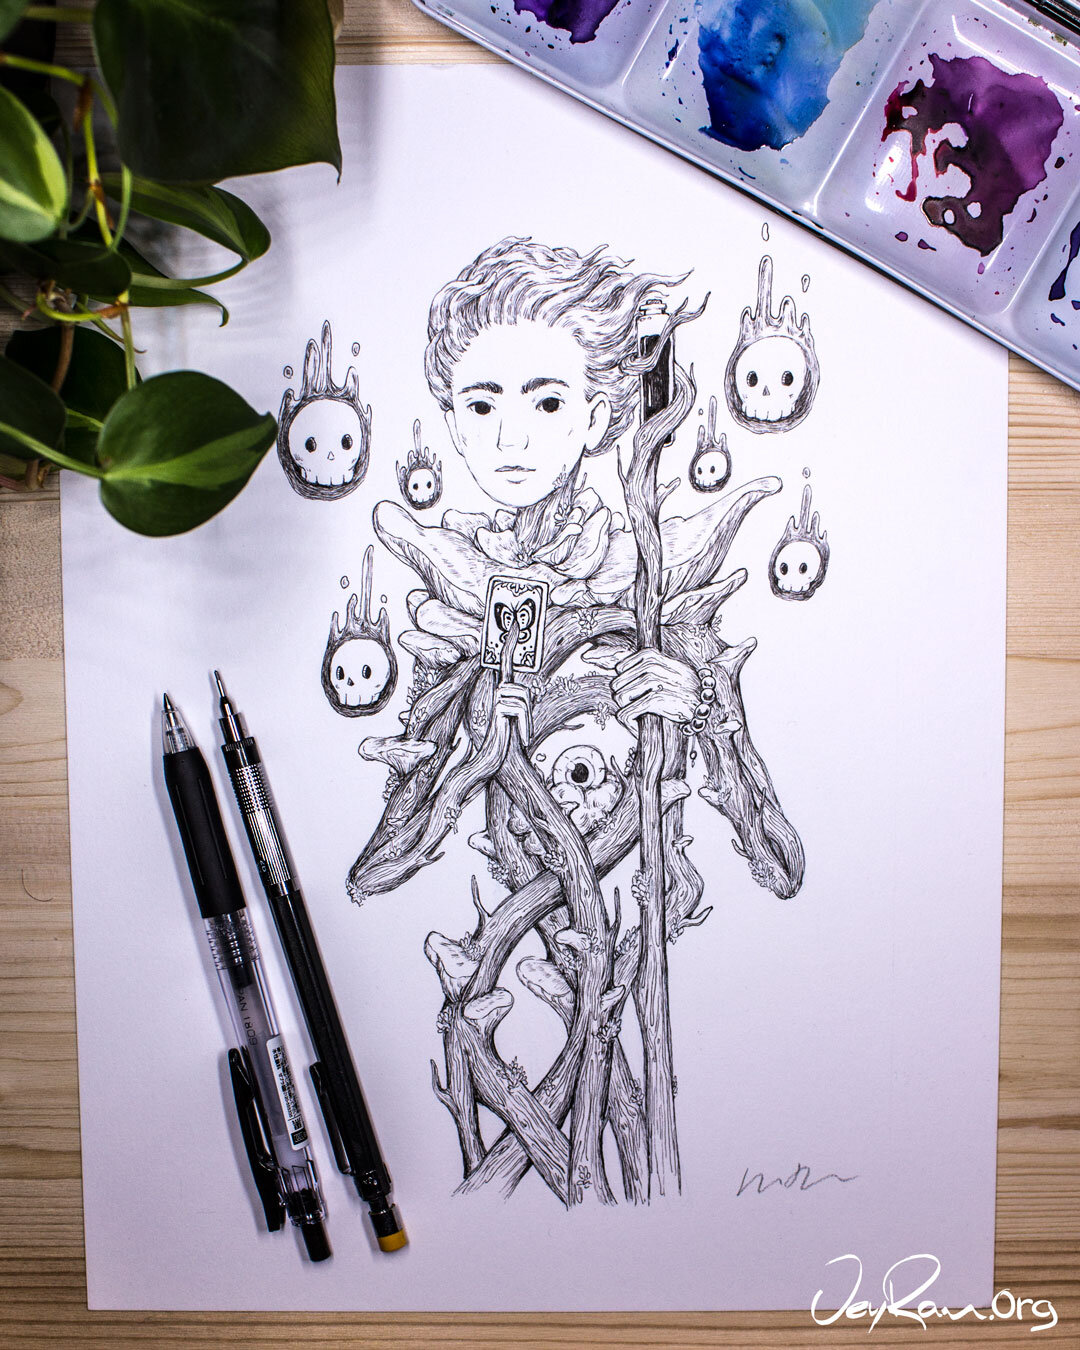 Omphalotus Nidiformis Wizard Ink Drawing :  Ballpoint Pen Art by JeyRam. I'm an artist from Toronto that specializes in simple and elegant ink drawing! #inktober #inkart #originalart #inktober2019